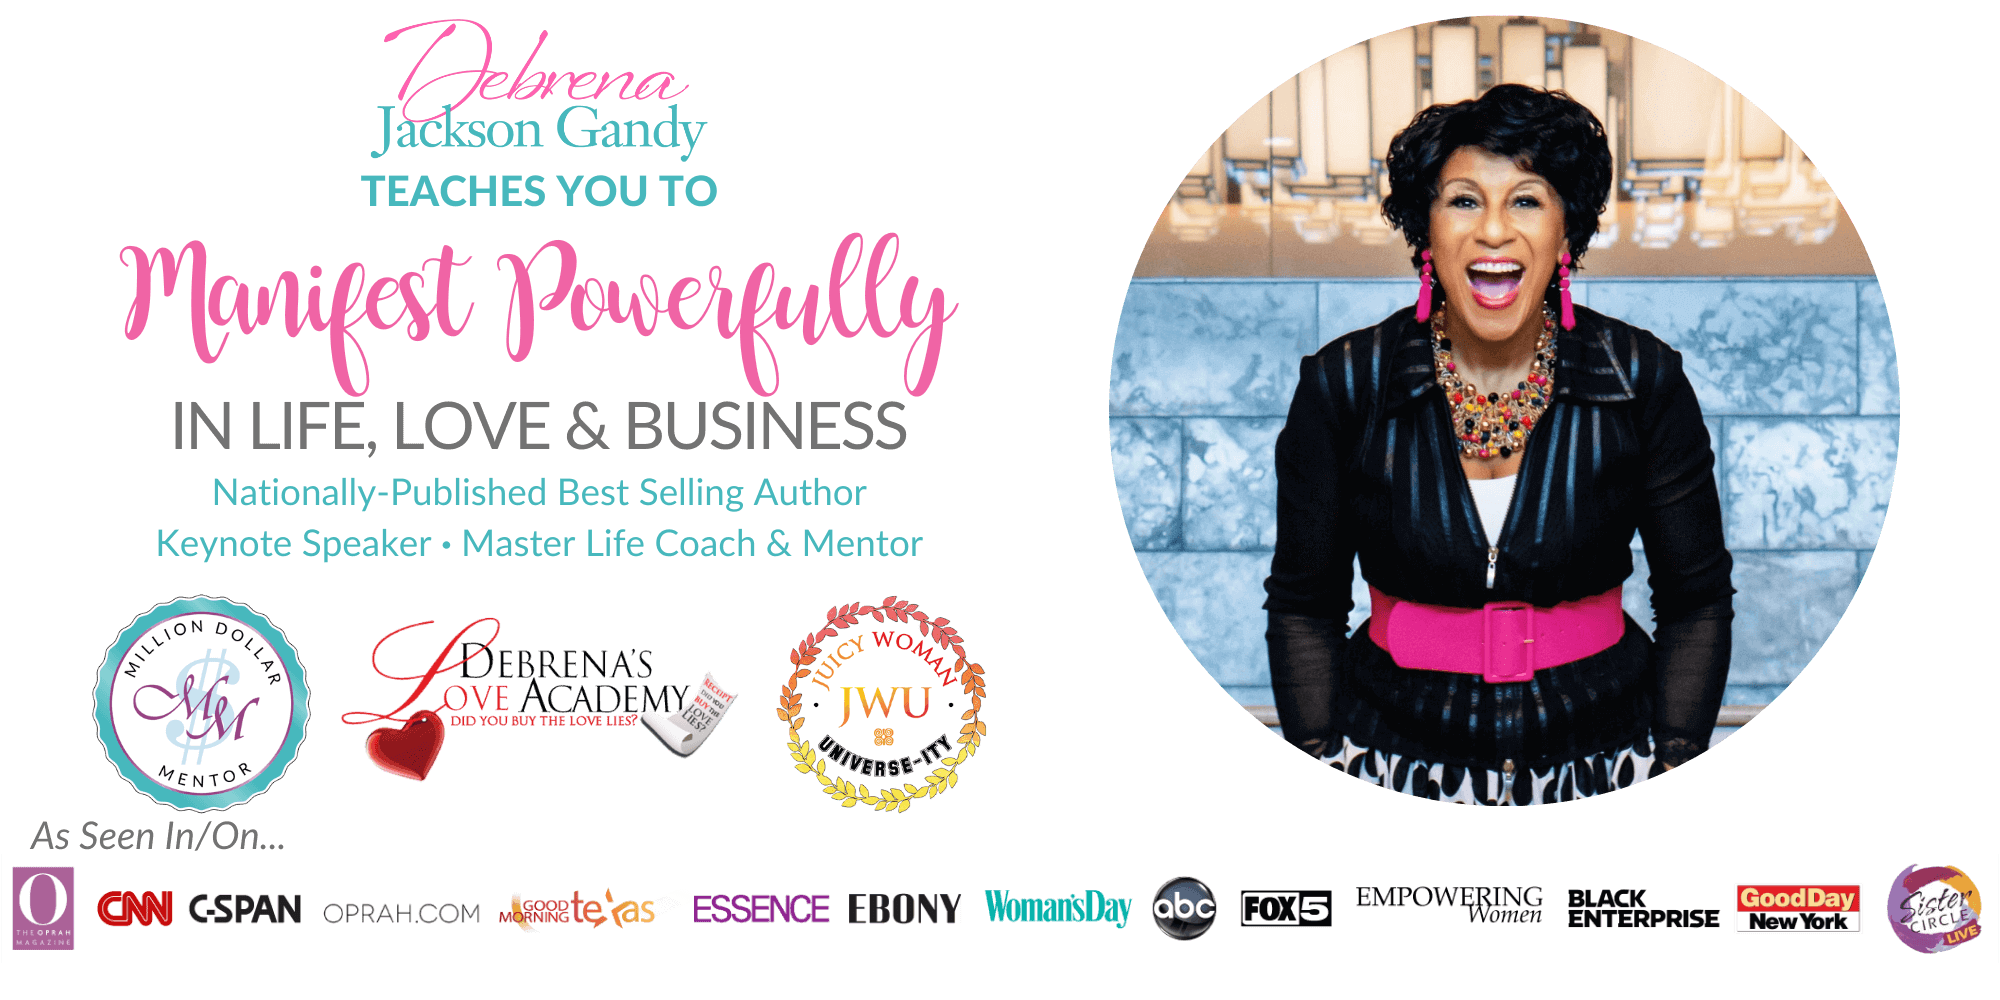 Debrena Jackson Gandy teaches you to MANIFEST POWERFULLY in Life, Love & Business